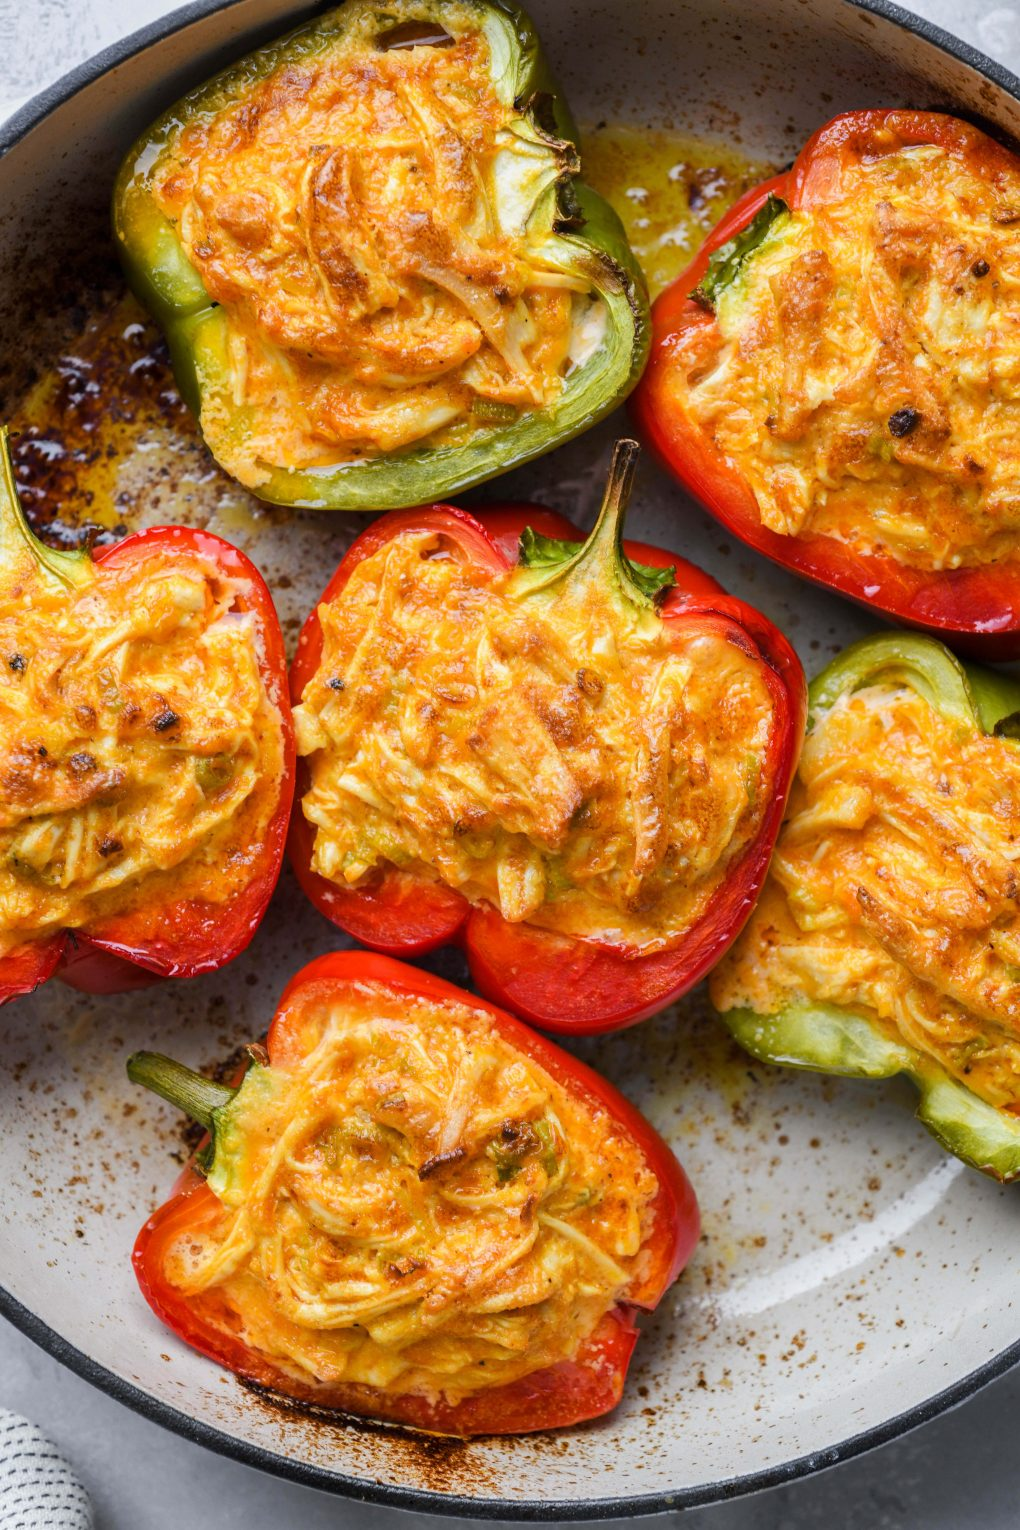 Baked bell peppers filled with shredded buffalo chicken mixture in an enameled white skillet.